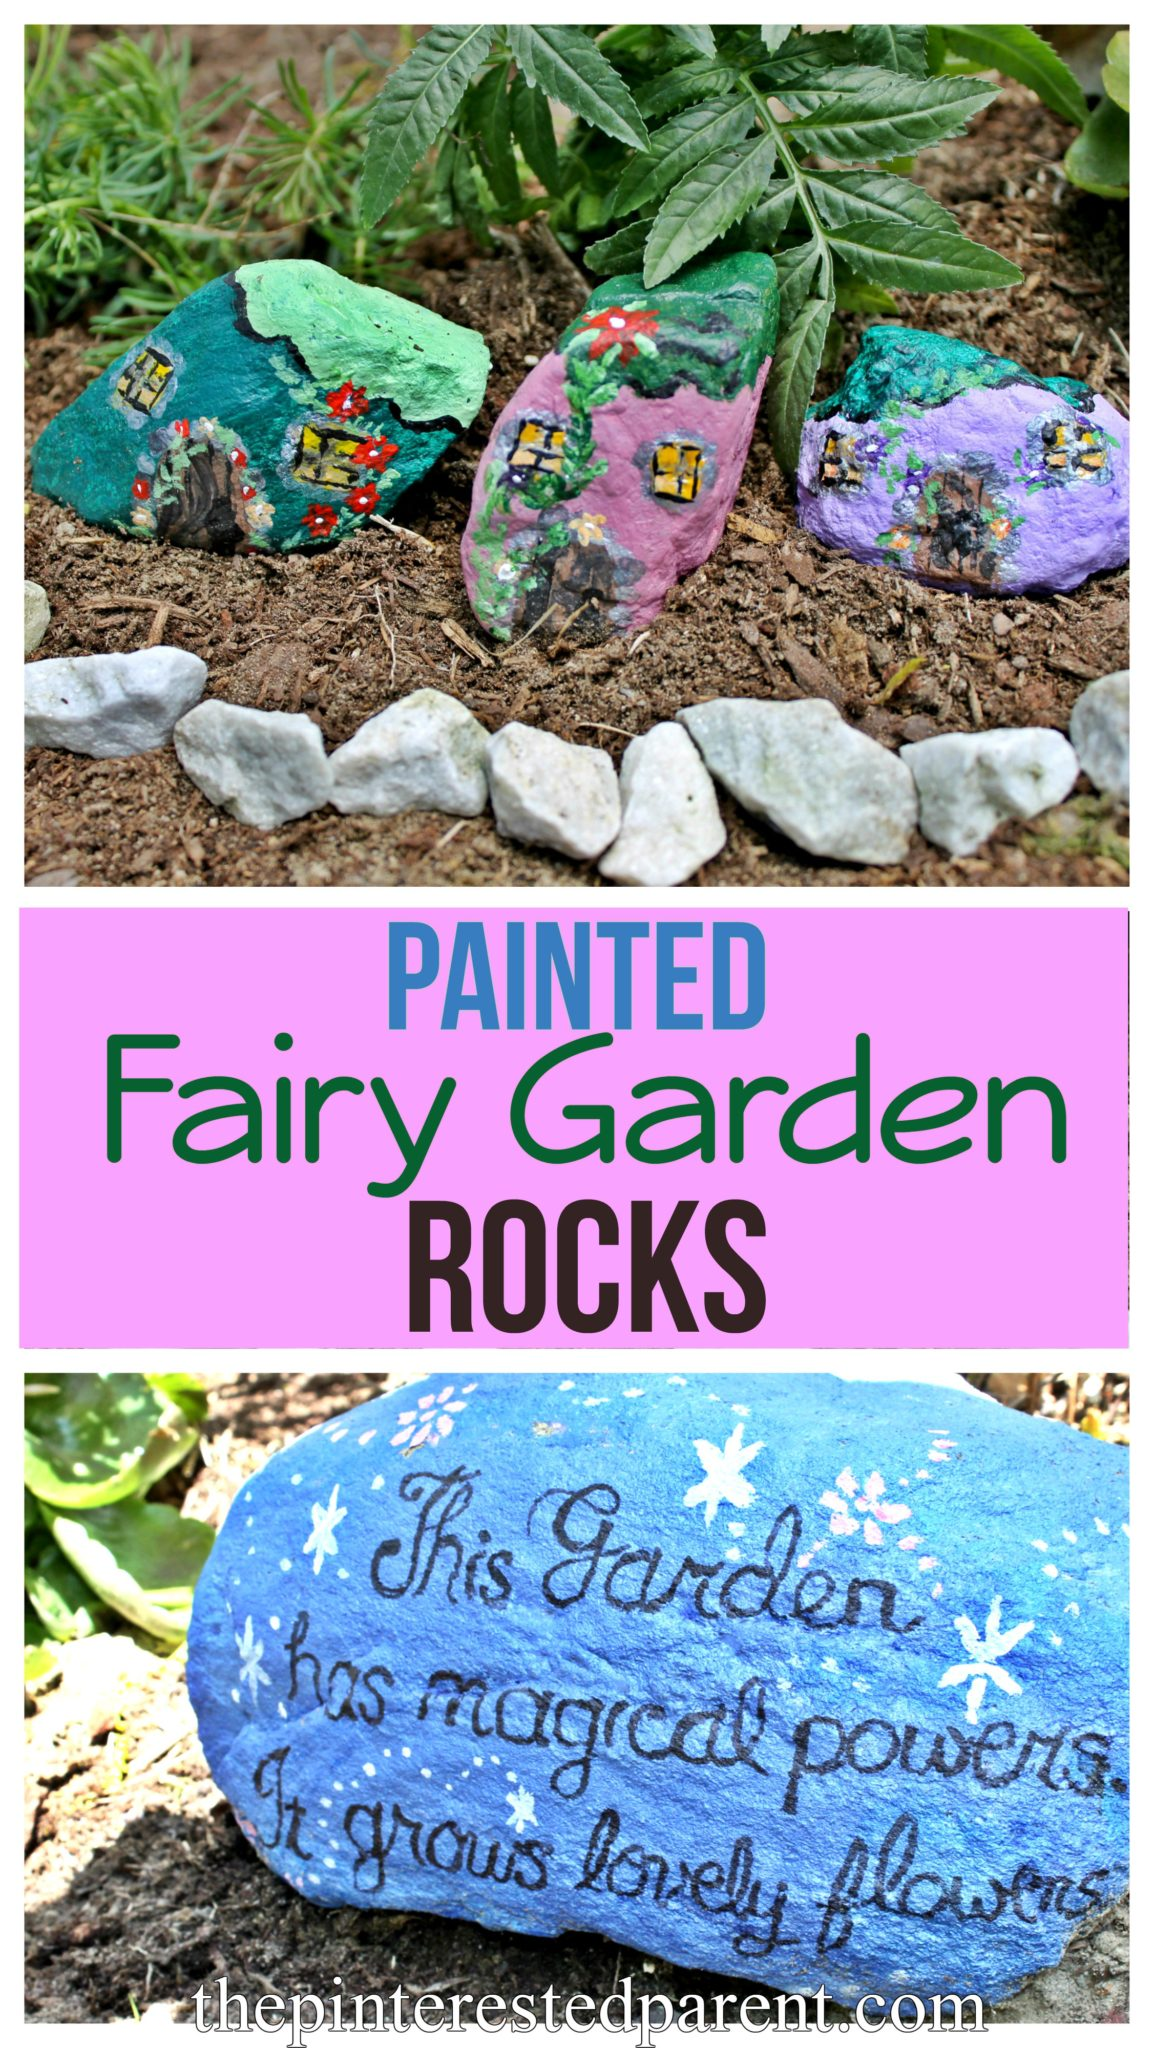 Painted Fairy Garden Rocks The Pinterested Parent